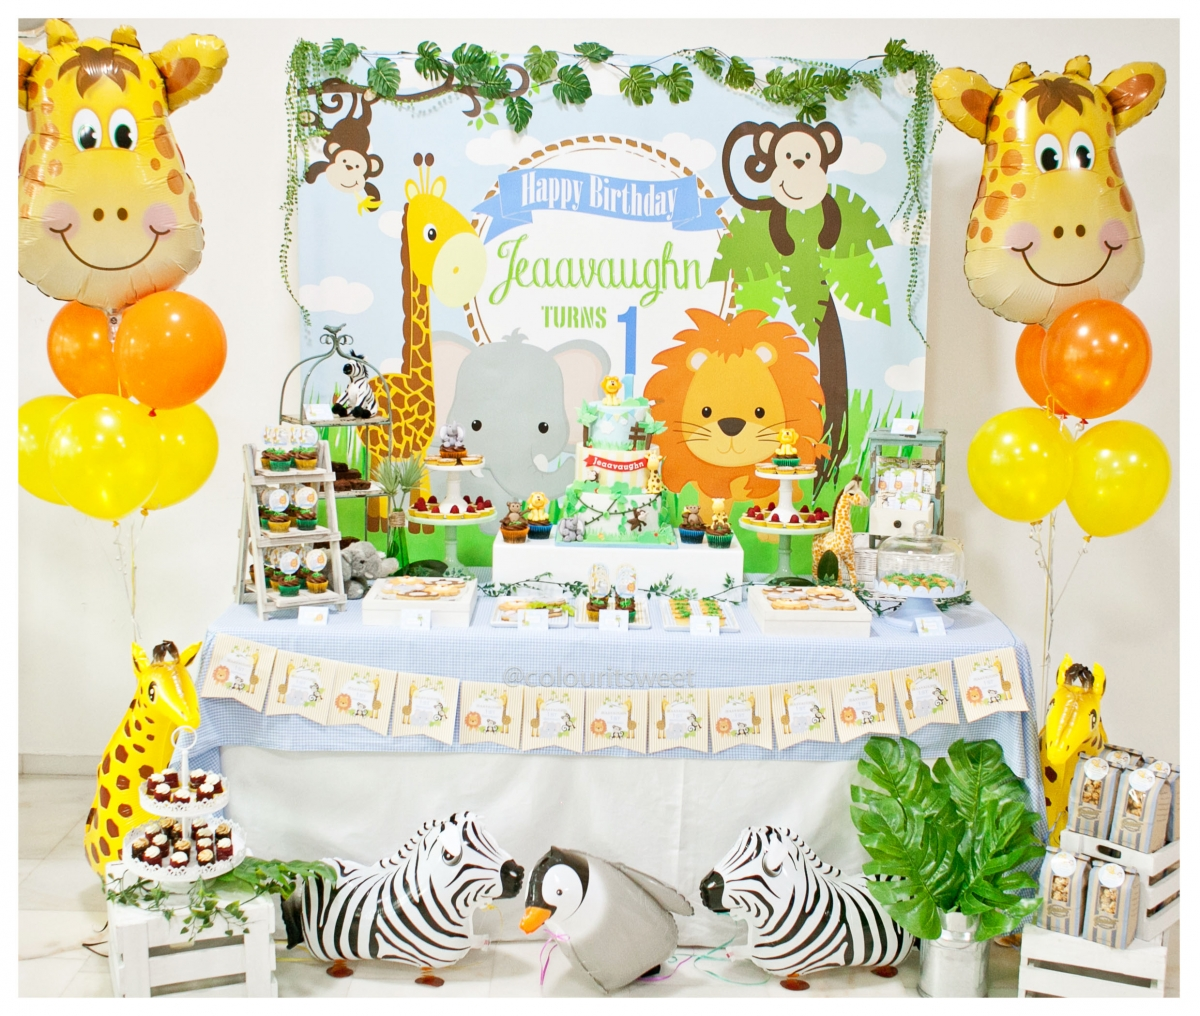 Party Animal 1st Birthday First Birthday Ideas: Jeaavaughn's 1st Birthday Animal Party! » Colour It Sweet